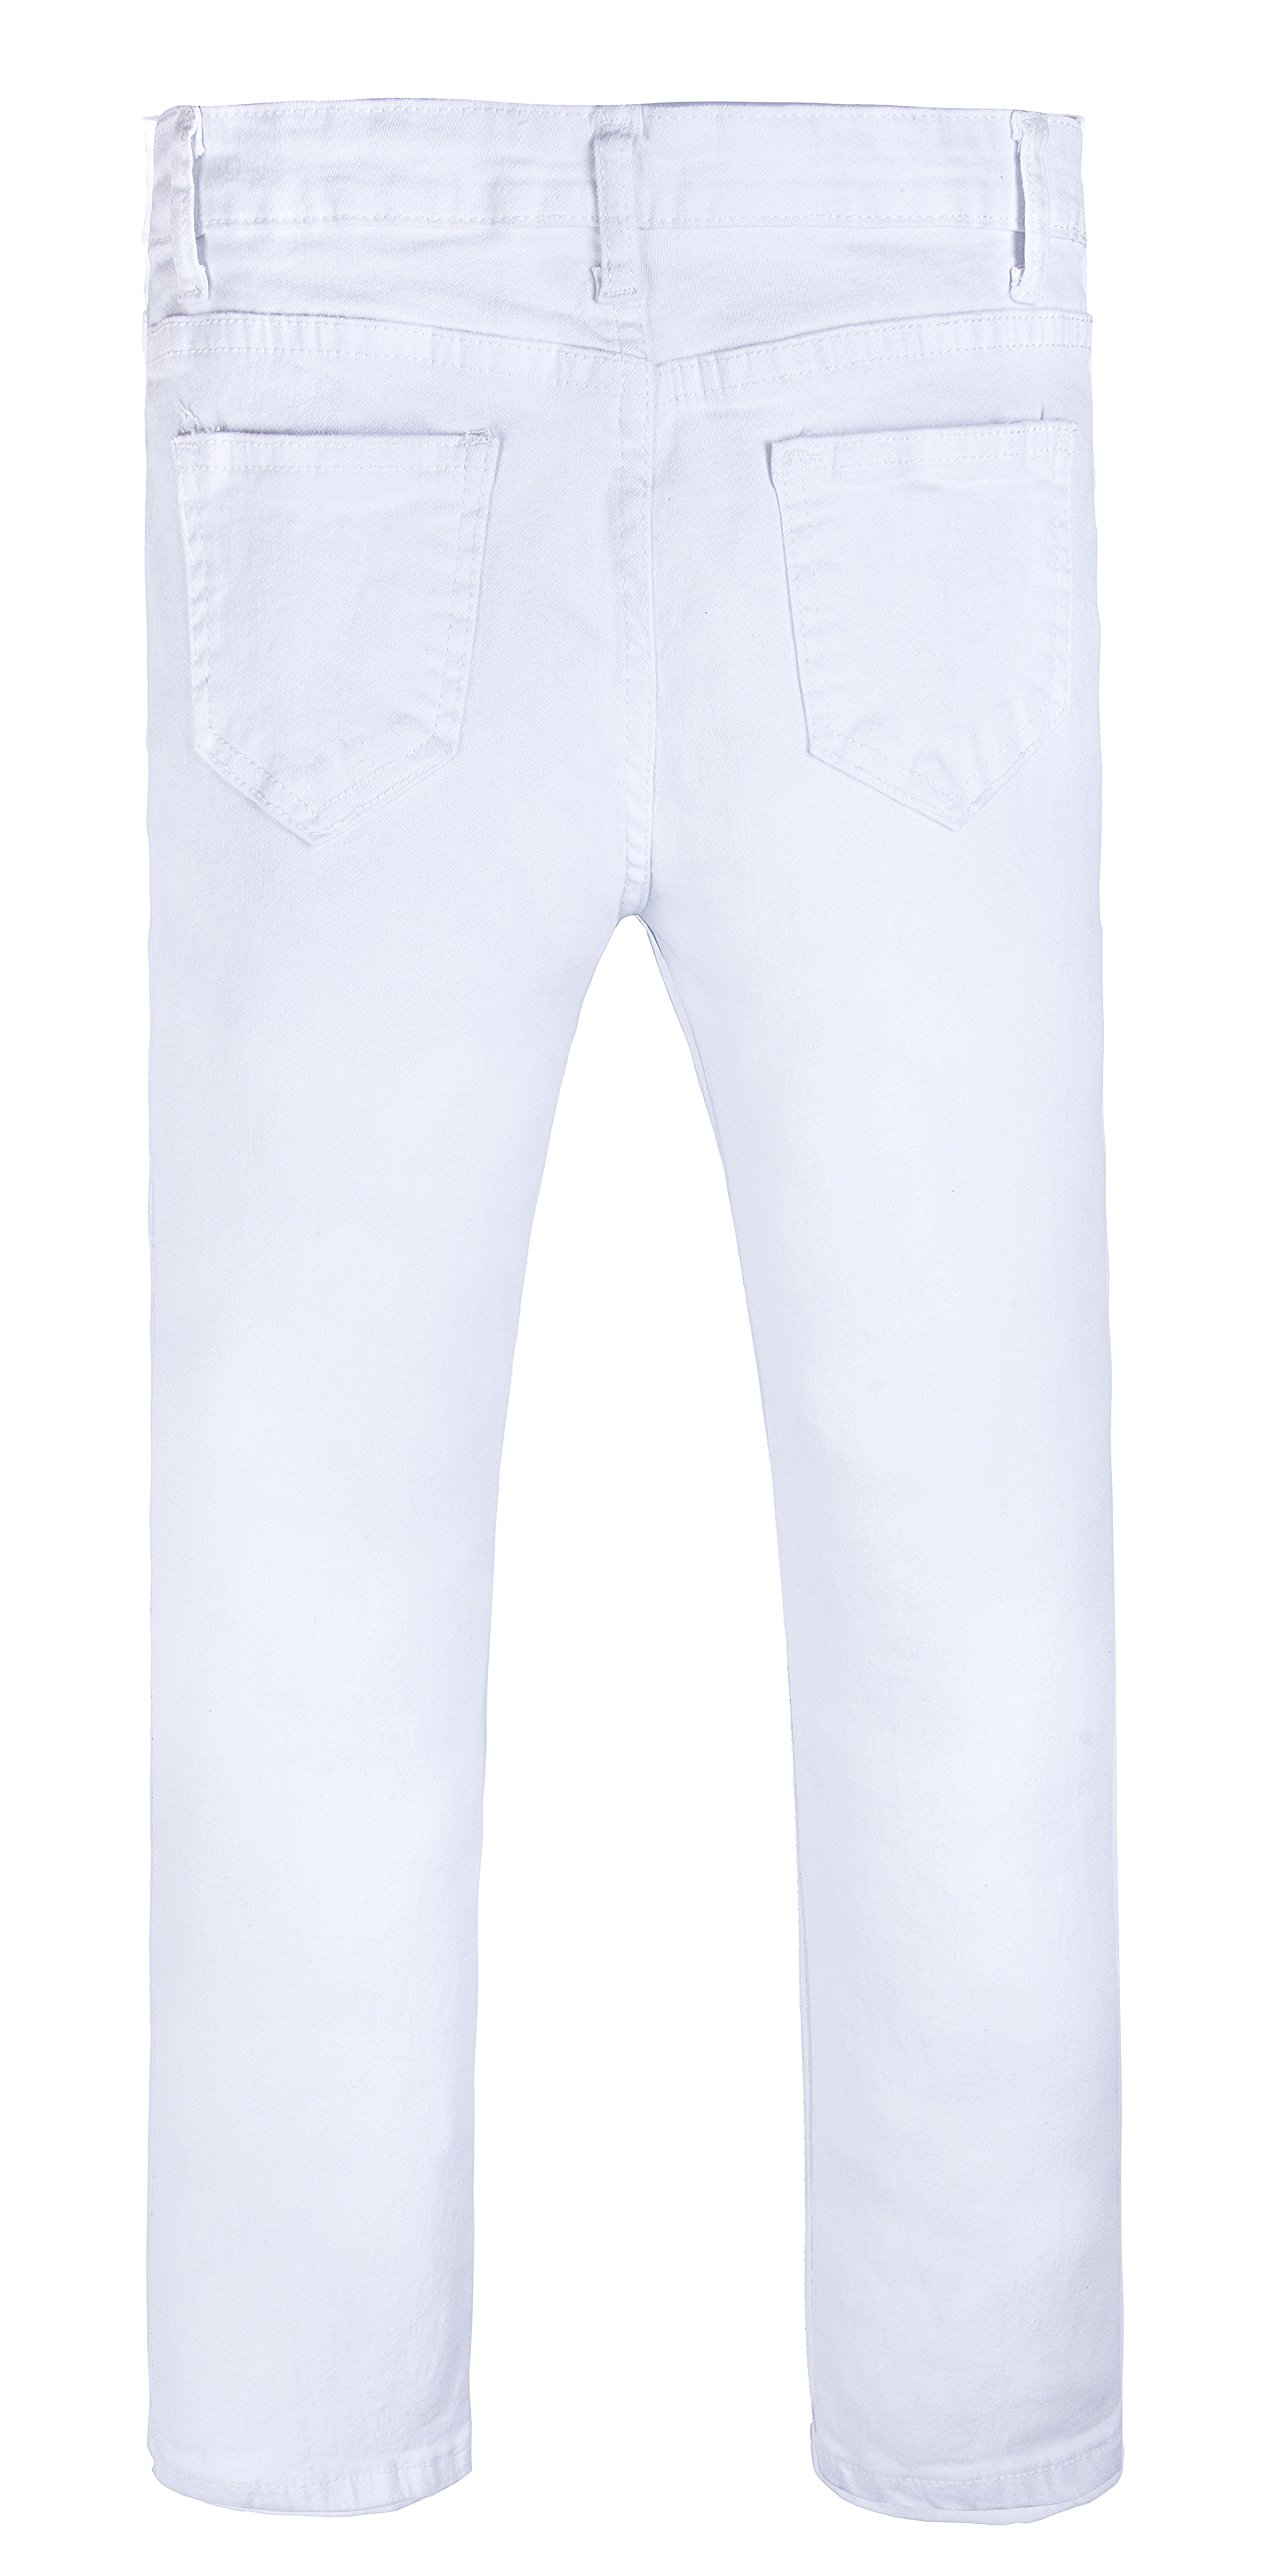 Girls Fashion Skinny Fit Jeans Distressed Ripped Hole Denim Pants White 7t by GALMINT (Image #2)